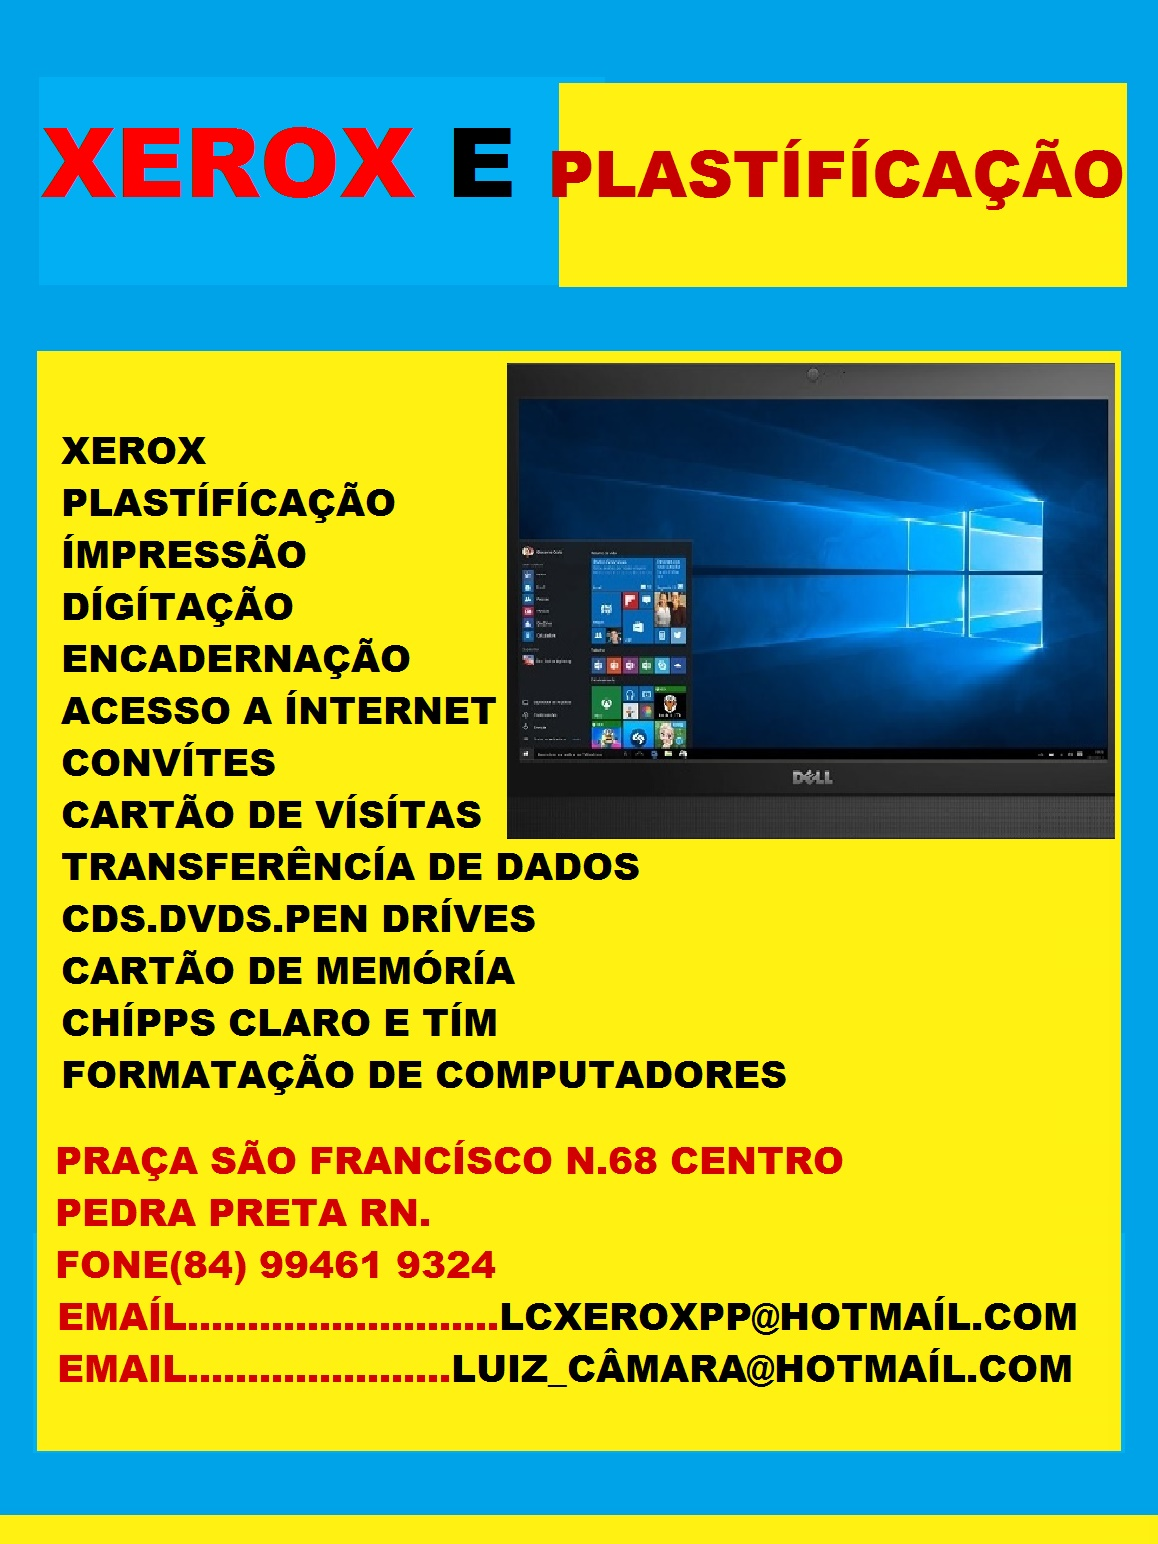 LAN HOUSE XEROX E PLASTÍFICAÇÃO PEDRA PRETA RN